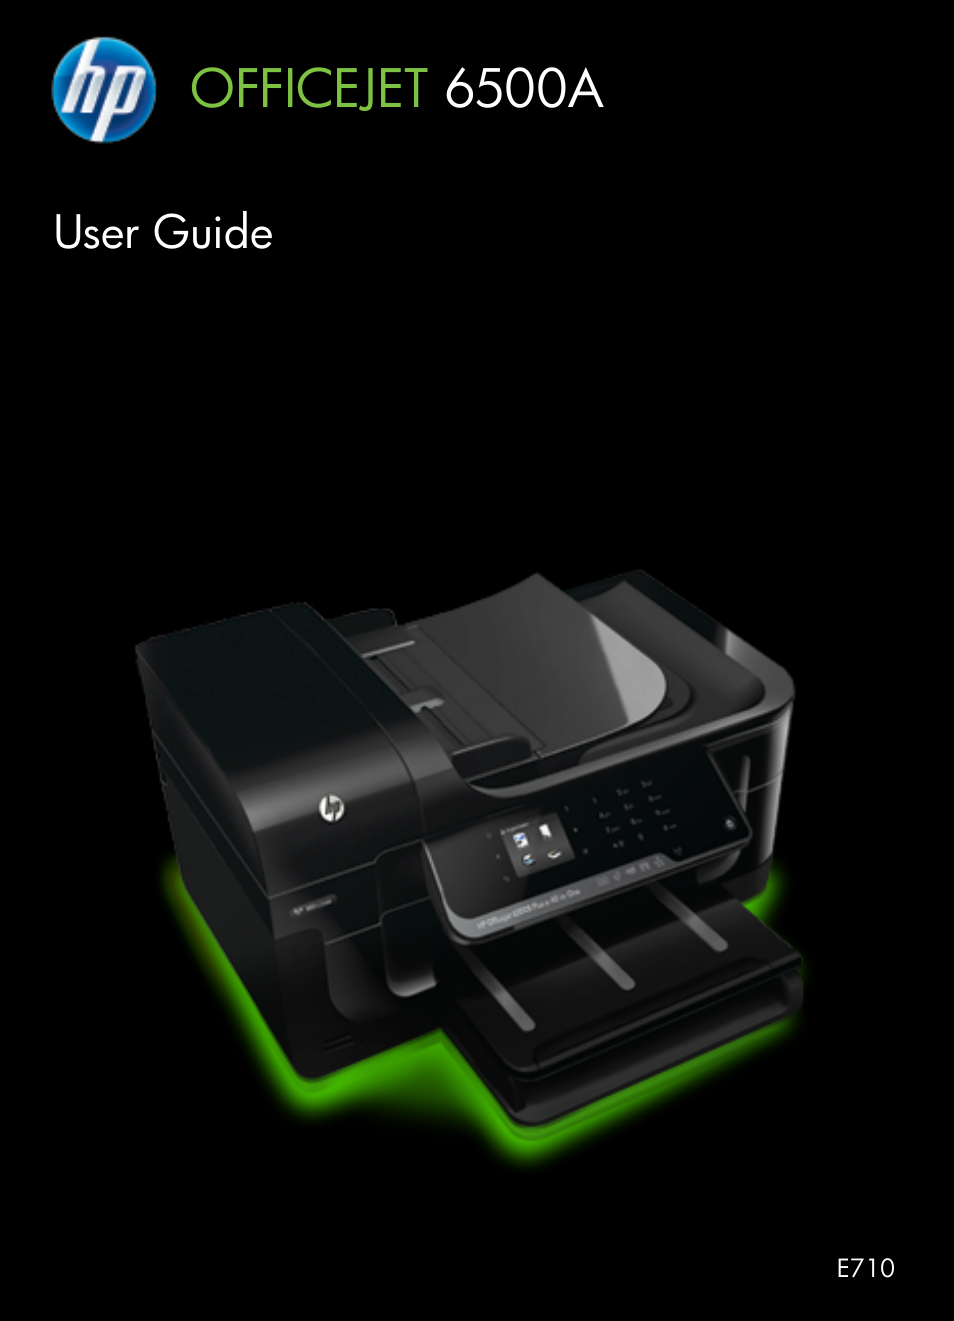 HP Officejet 6500A Plus User Manual | 250 pages | Also for: Officejet 6500A